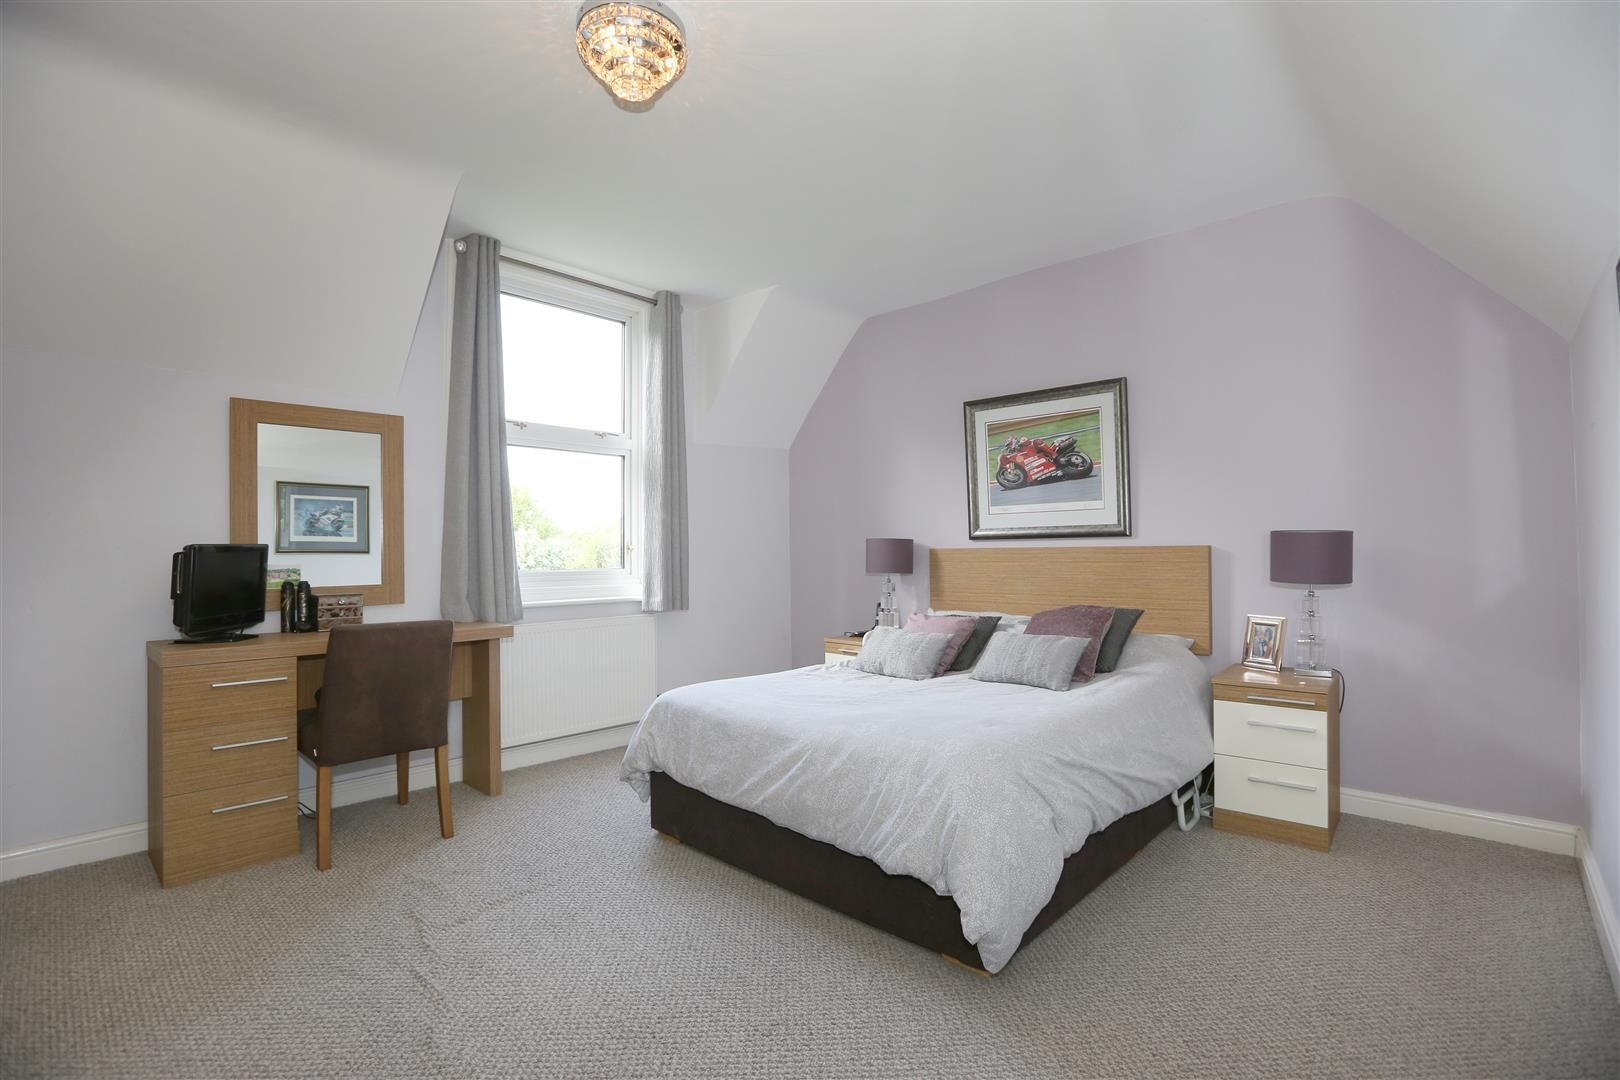 4 bed house for sale in Churchill 19